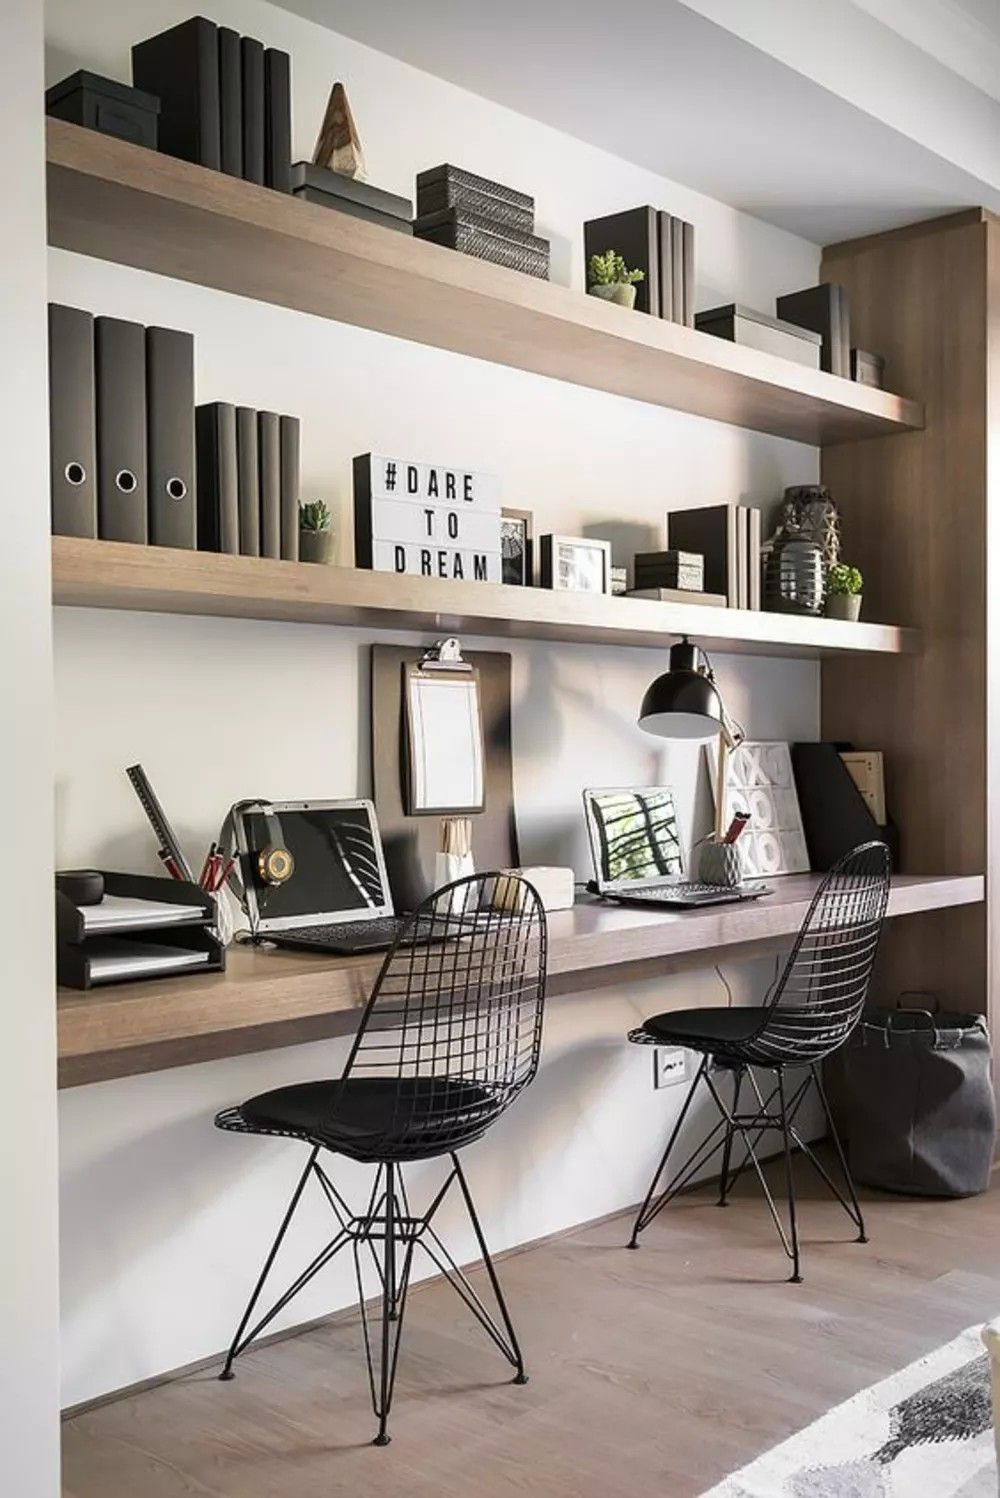 Windows to closet wall desk option working tables in